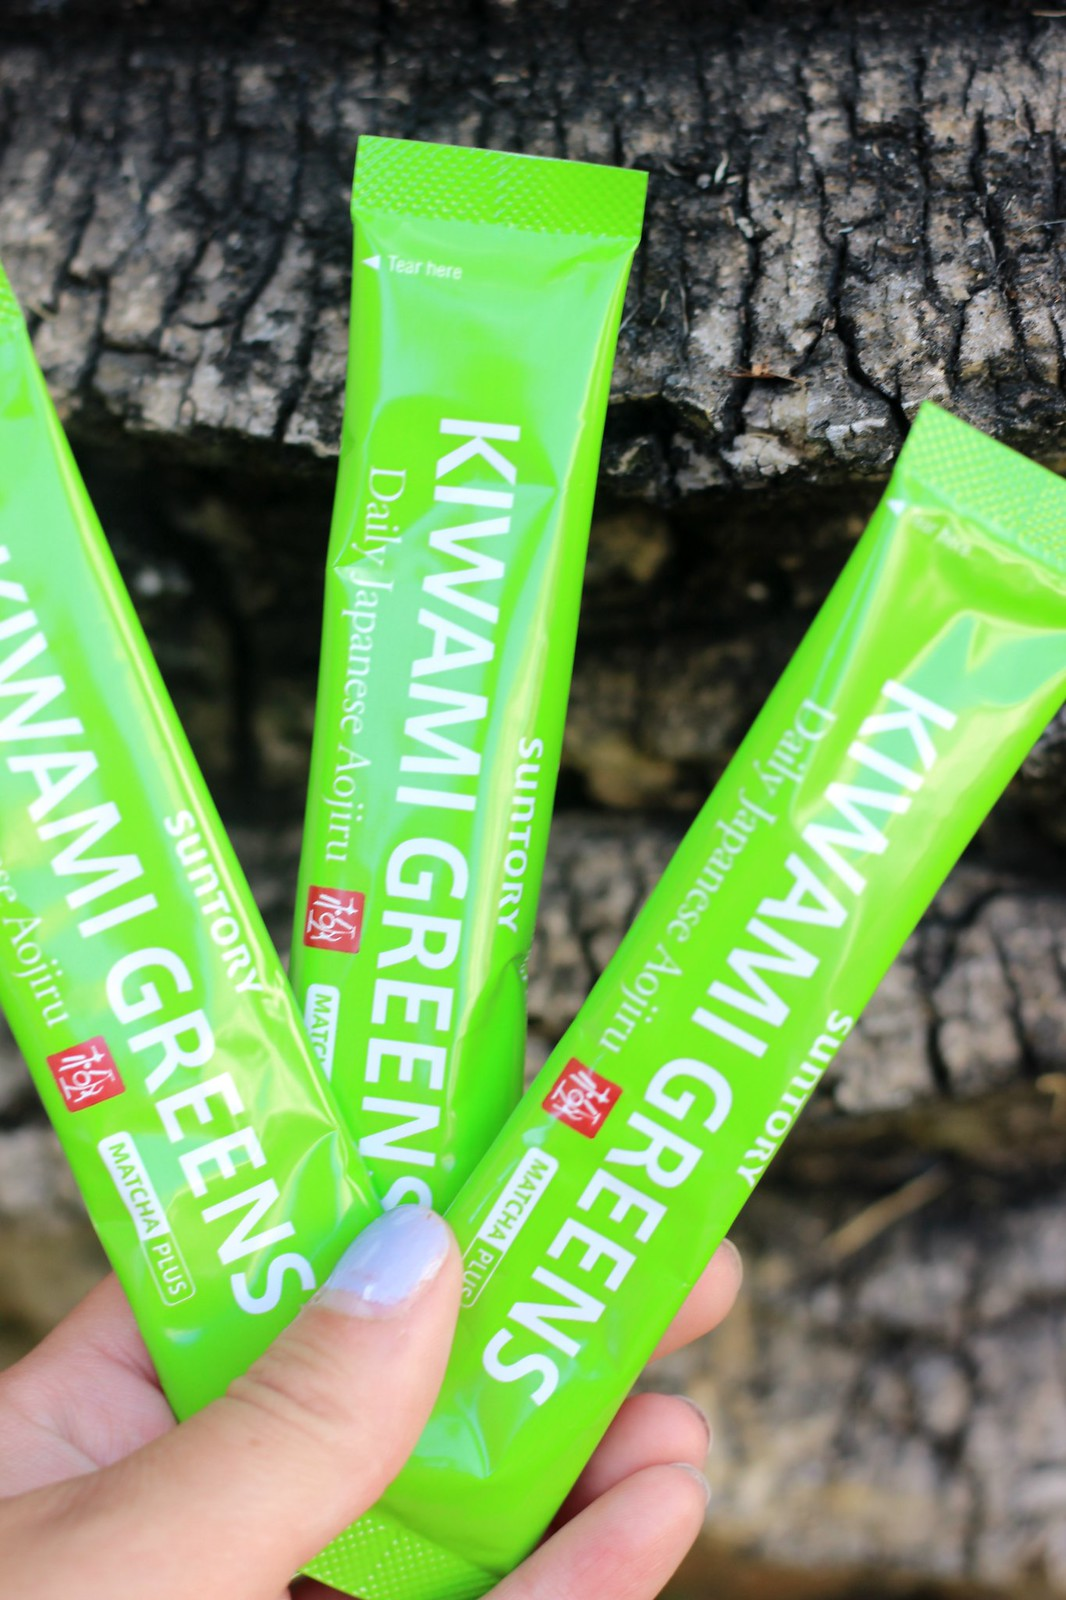 Building Healthy Habits with Kiwami Greens #KiwamiGreens